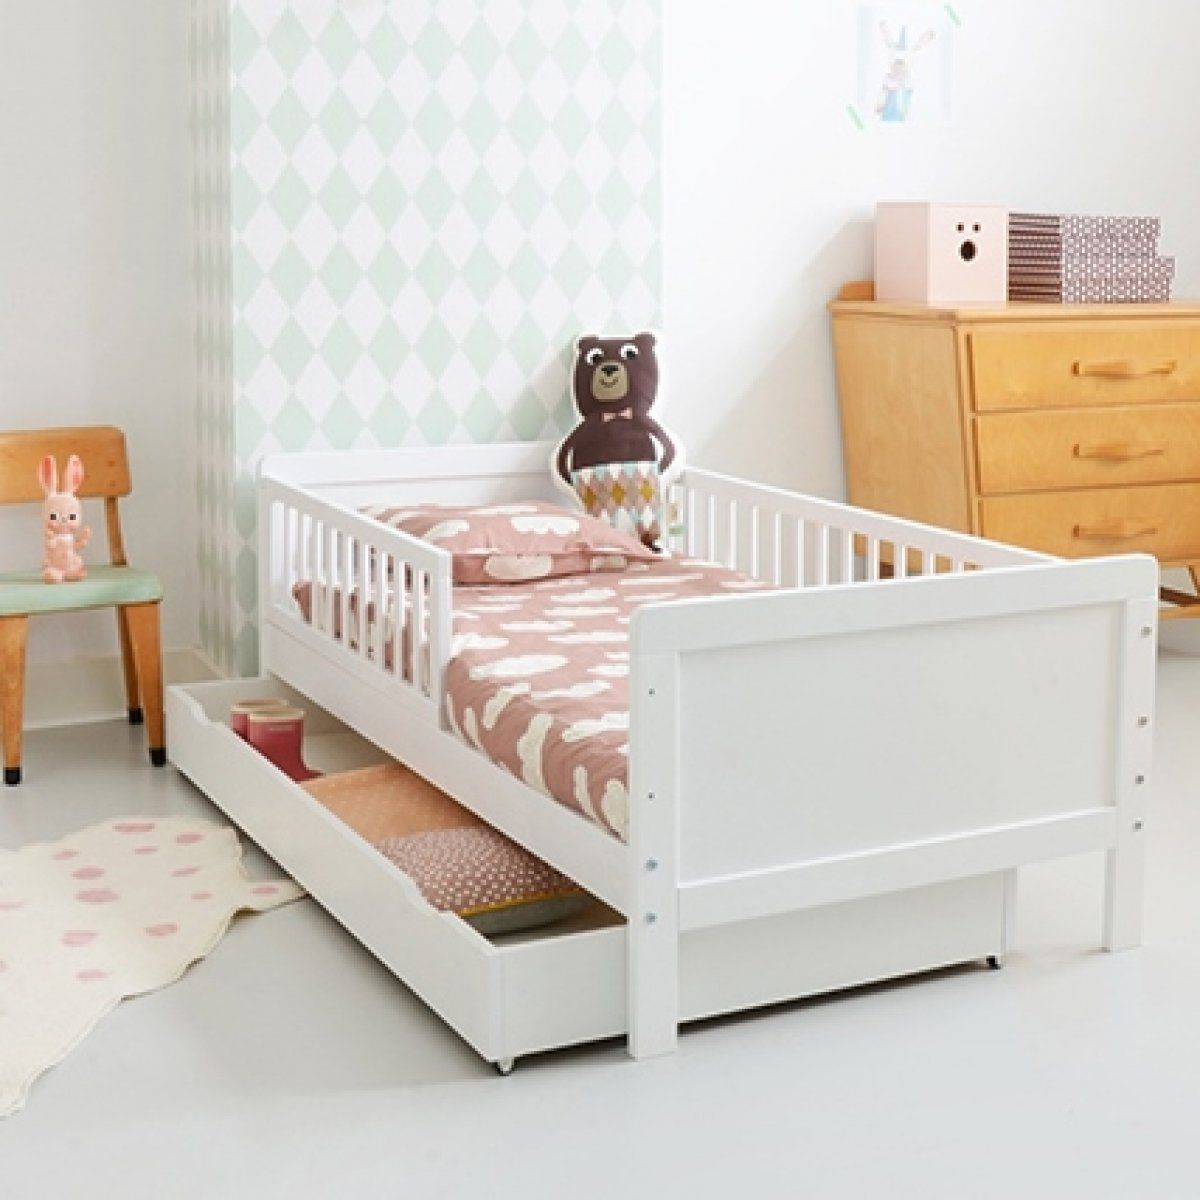 Lit bambin en bois   Couchage 70x140 cm PAPILLON moreover Cuna convertible UP BOLIN BOLON 70X140 cm Bolin Bolon likewise PAIDI Kinderbett 70x140 cm Ylvie   BabyJoe ch additionally  in addition IRONWOOD ASHEN COT BED 70x140   SLATS   Childhome likewise 70x140 Zigzag Carpet blue made from Cotton by by Broste Copenhagen as well Marseille   Cot bed 70x140   Kidsmill further Dinosaur   muslin fitted sheet 70x140 furthermore Tipi Bed  70x140 cm    Funique co uk furthermore Al Baghli Sponge Mirror Wooden Frame 70x140   Maqzan in addition Cot   toddler bed 70x140 with drawer. on 70x140